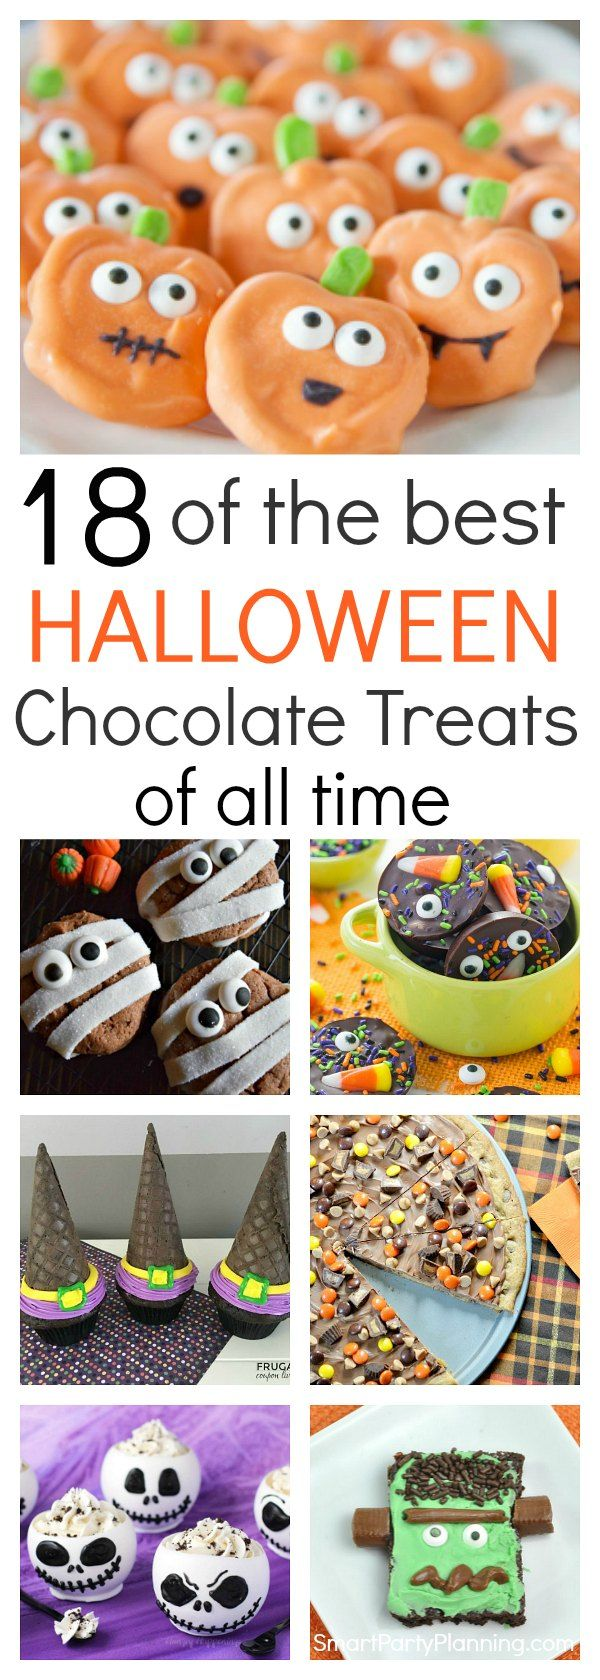 18 of the easiest chocolate treats you will find for a Halloween celebration.  With a mix of recipes, including cookies, cupcakes, brownies, and bite size treats, this selection will be enjoyed by both kids and adults. They are quick to make, they all look amazing and all taste delicious. It is the ultimate Halloween chocolate treat selection. via @https://au.pinterest.com/smartpartyplan/